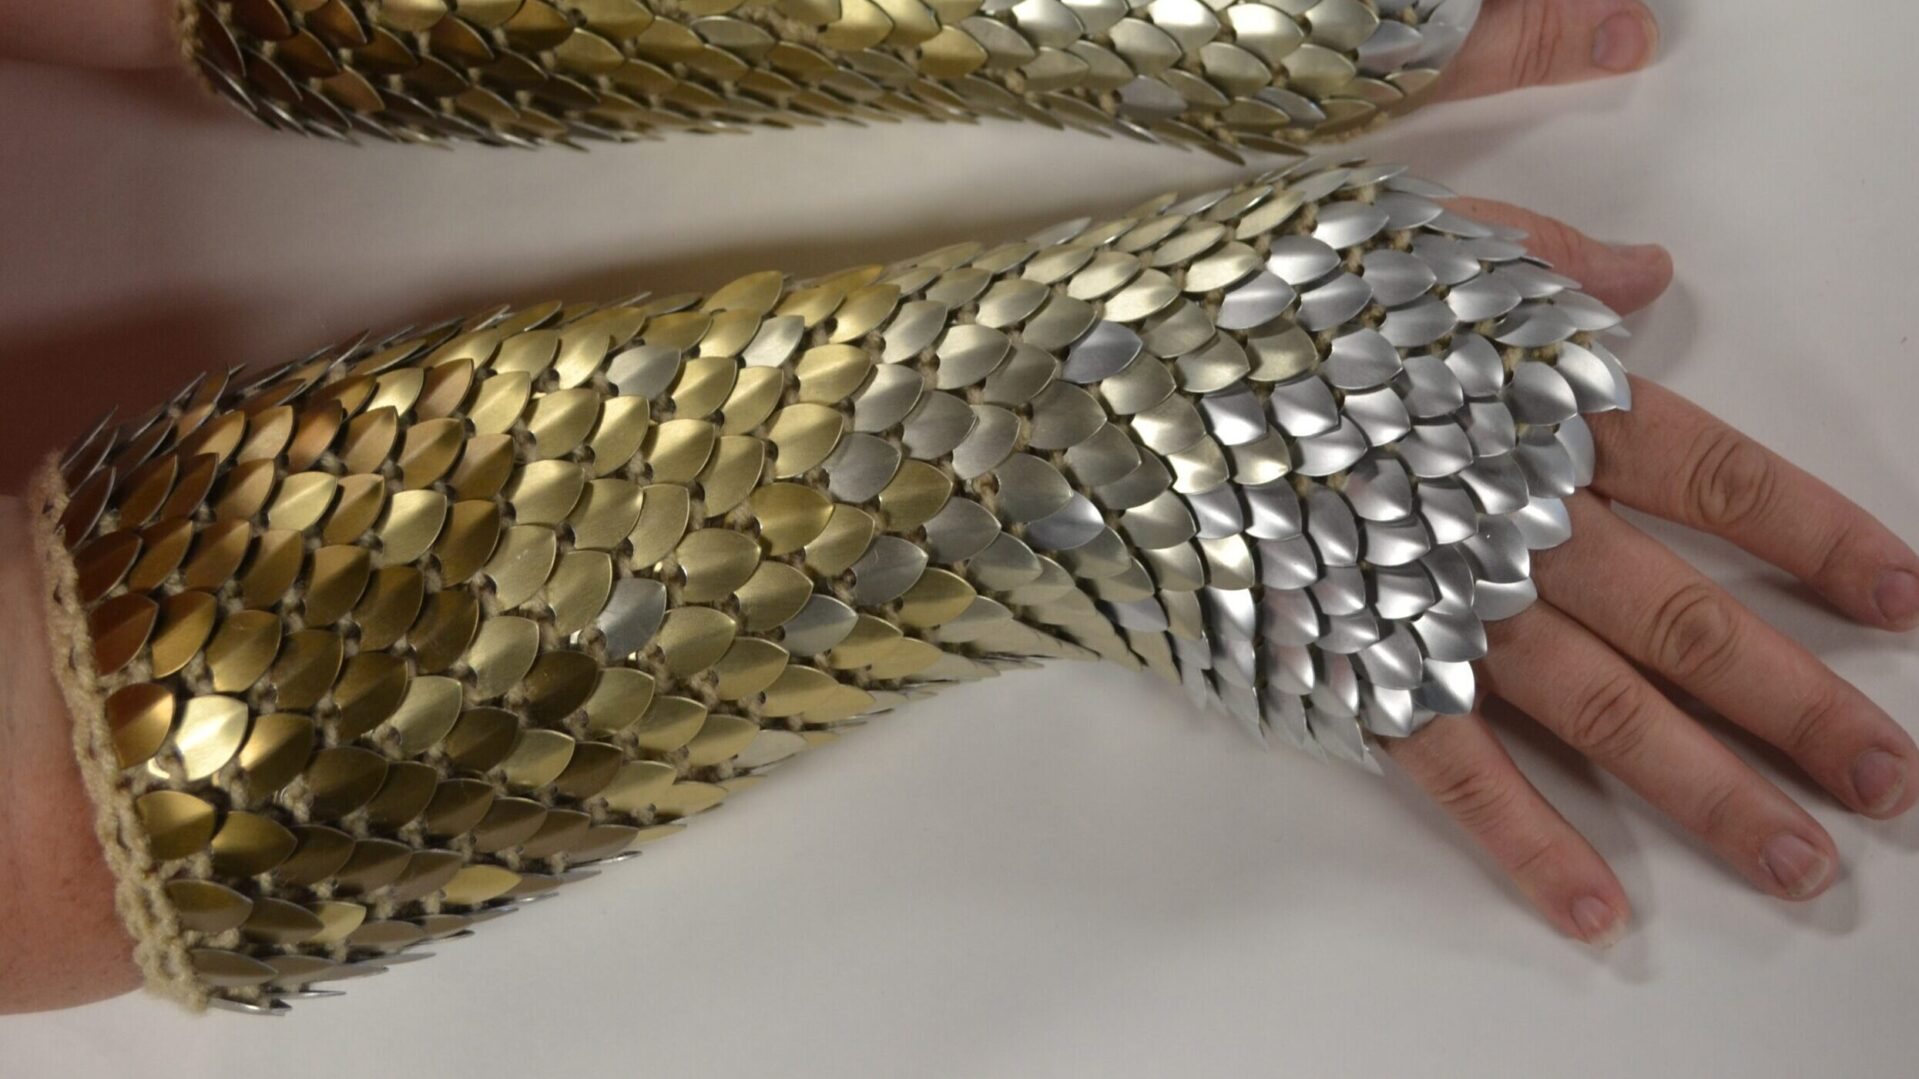 Long scalemaille gauntlets, cropped to show only one arm, with a bronze to silver gradient.